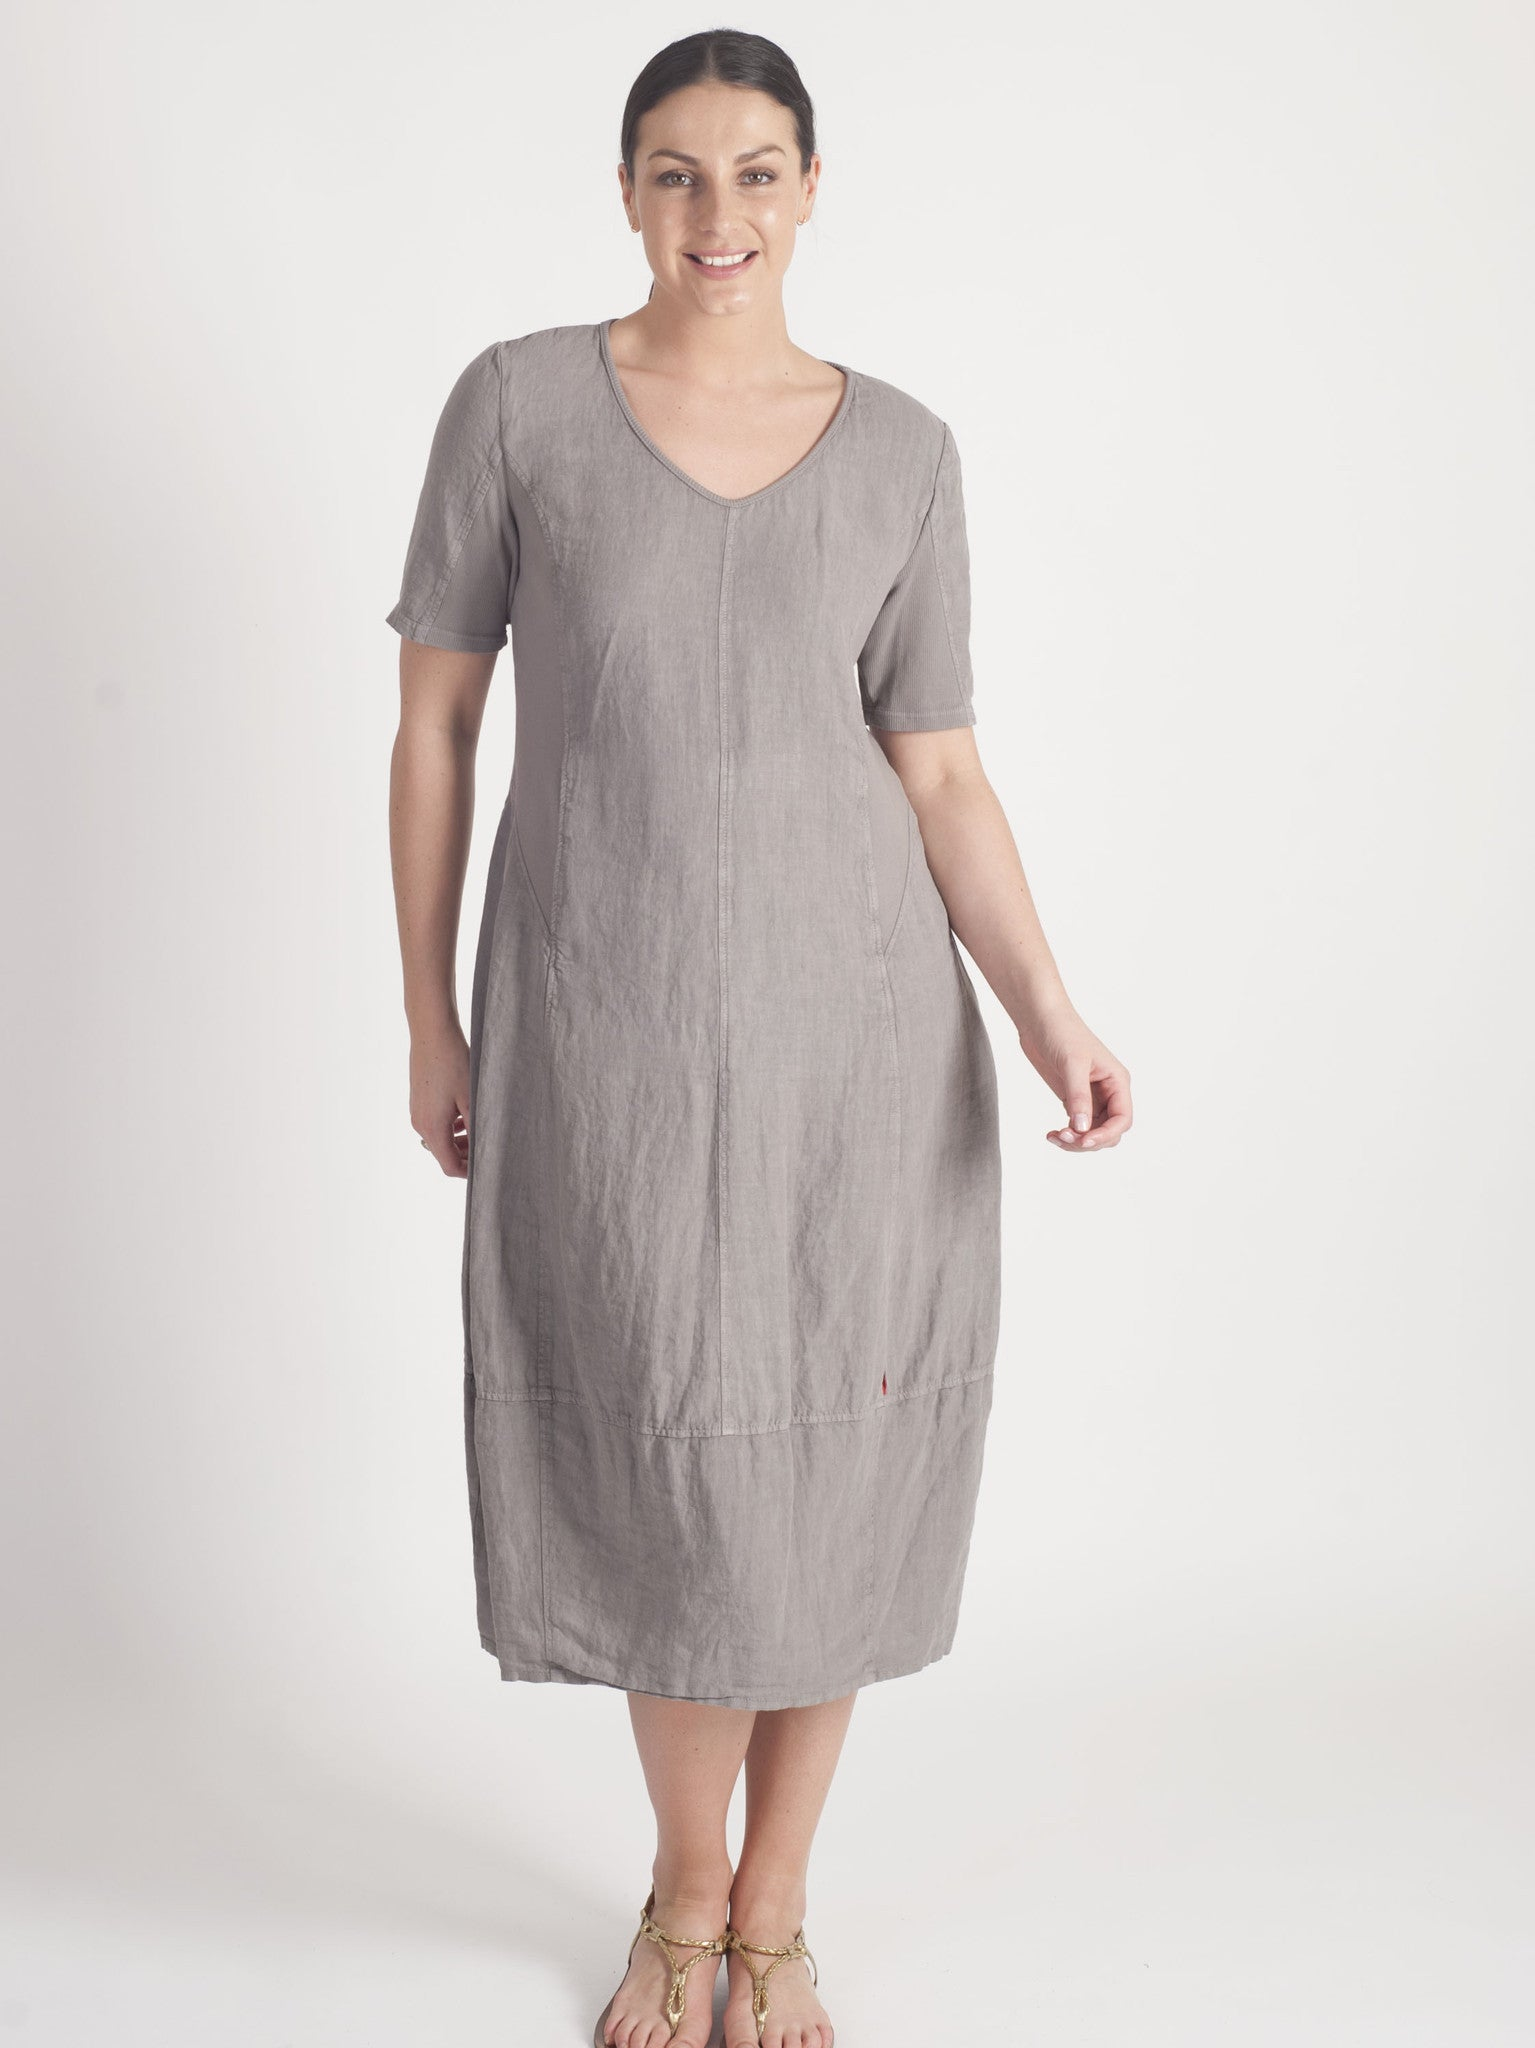 Vetono Mocha Linen Dress